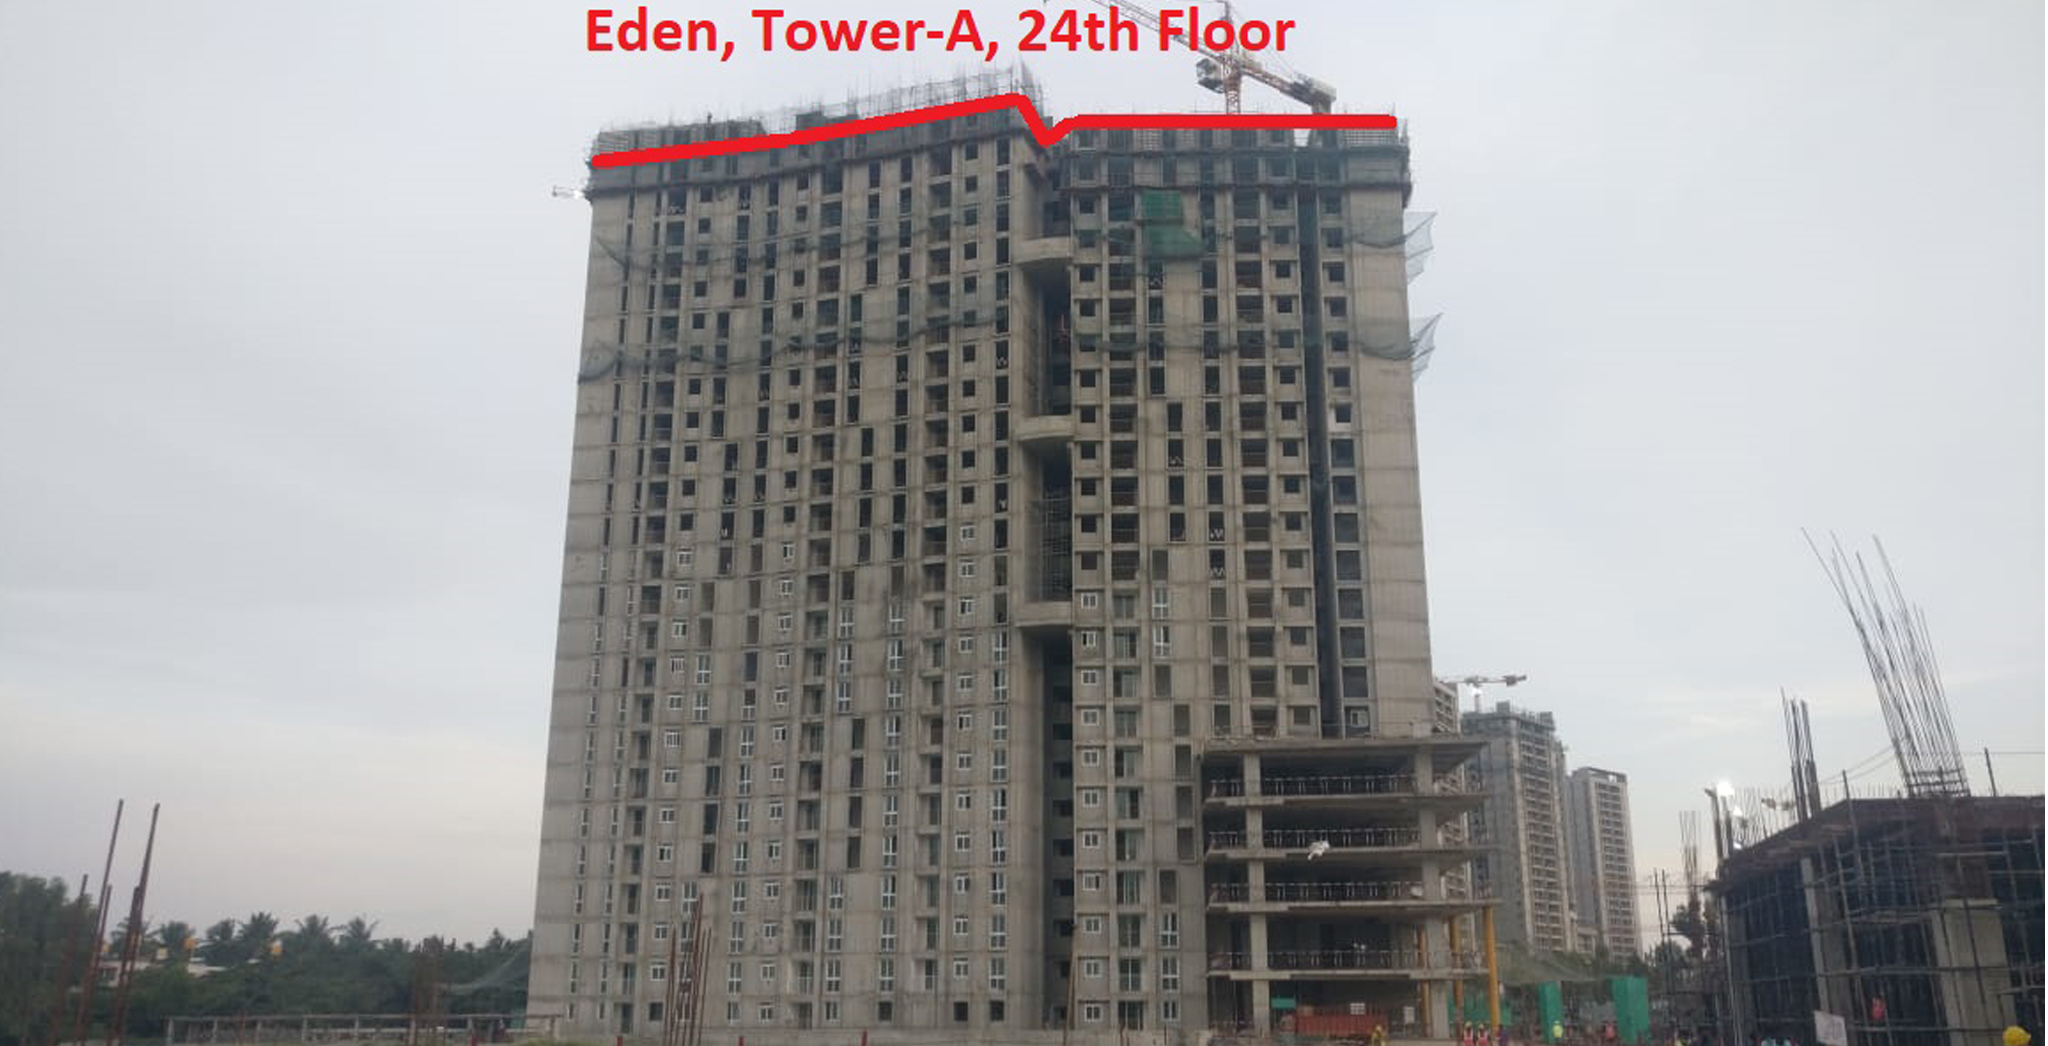 Sep 2021 - Eden Tower A: Completion of 24th floor slab Milestone